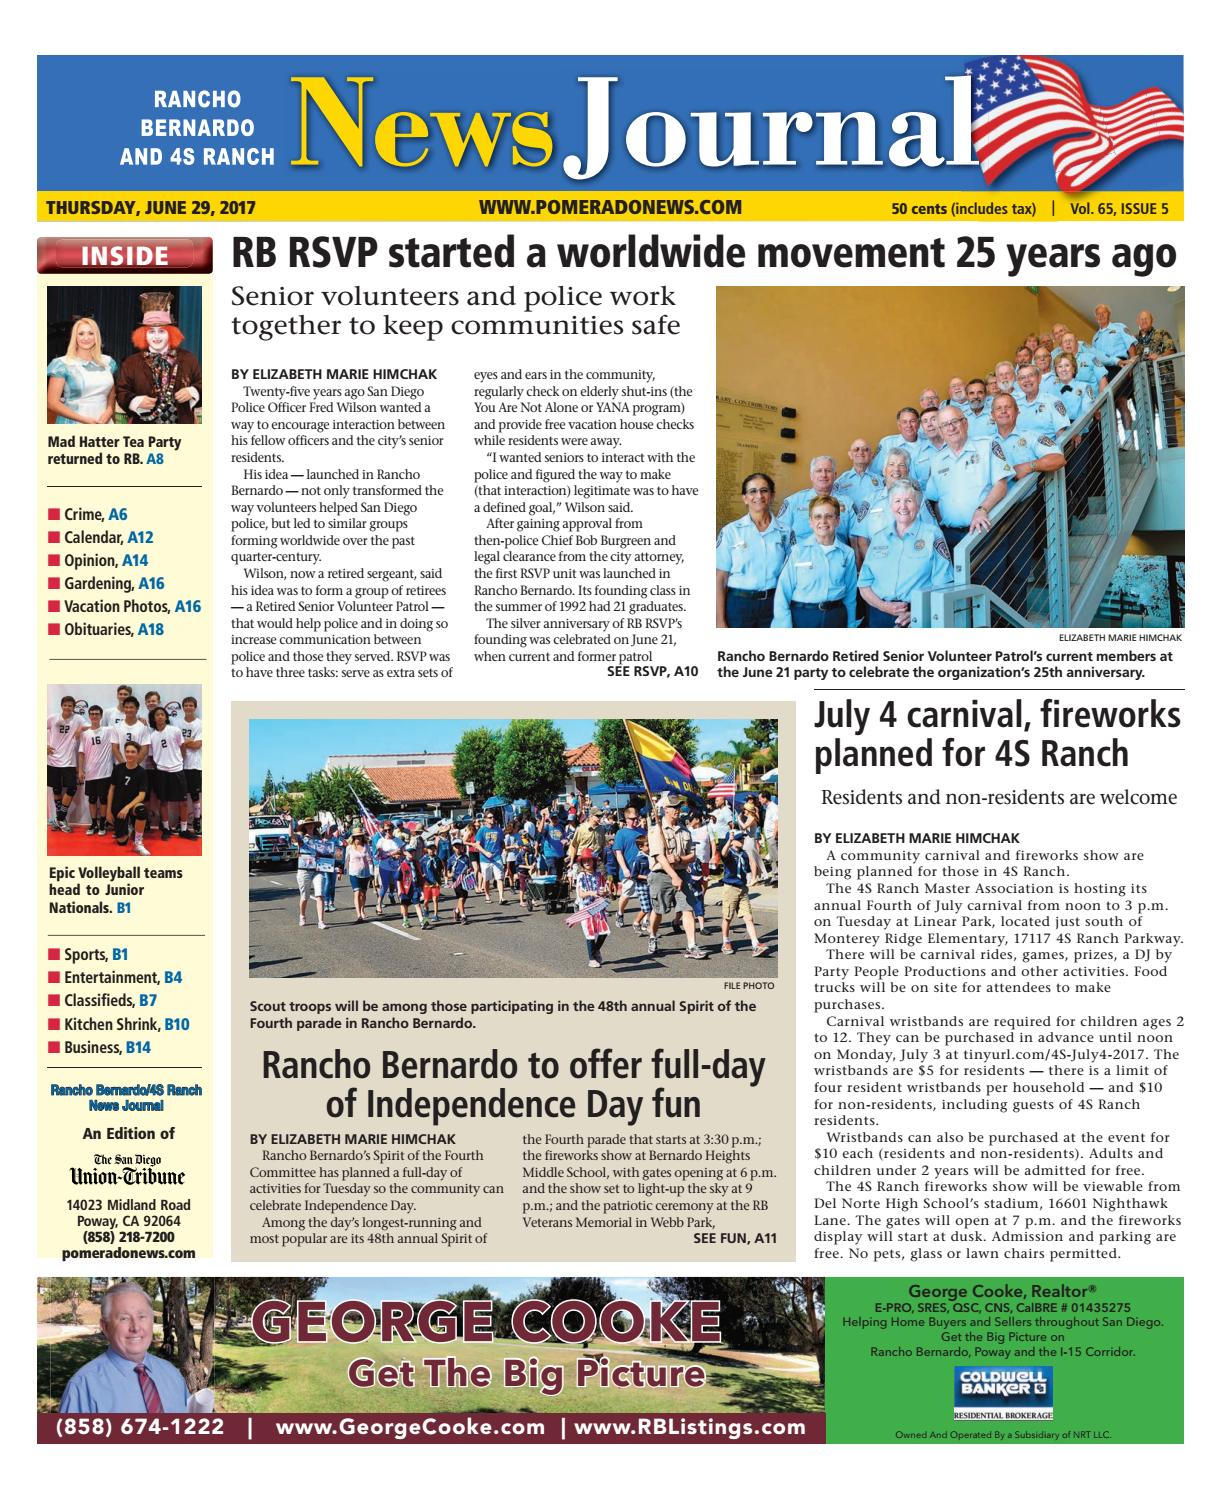 Rancho Bernardo News Journal 06 29 17 by MainStreet Media